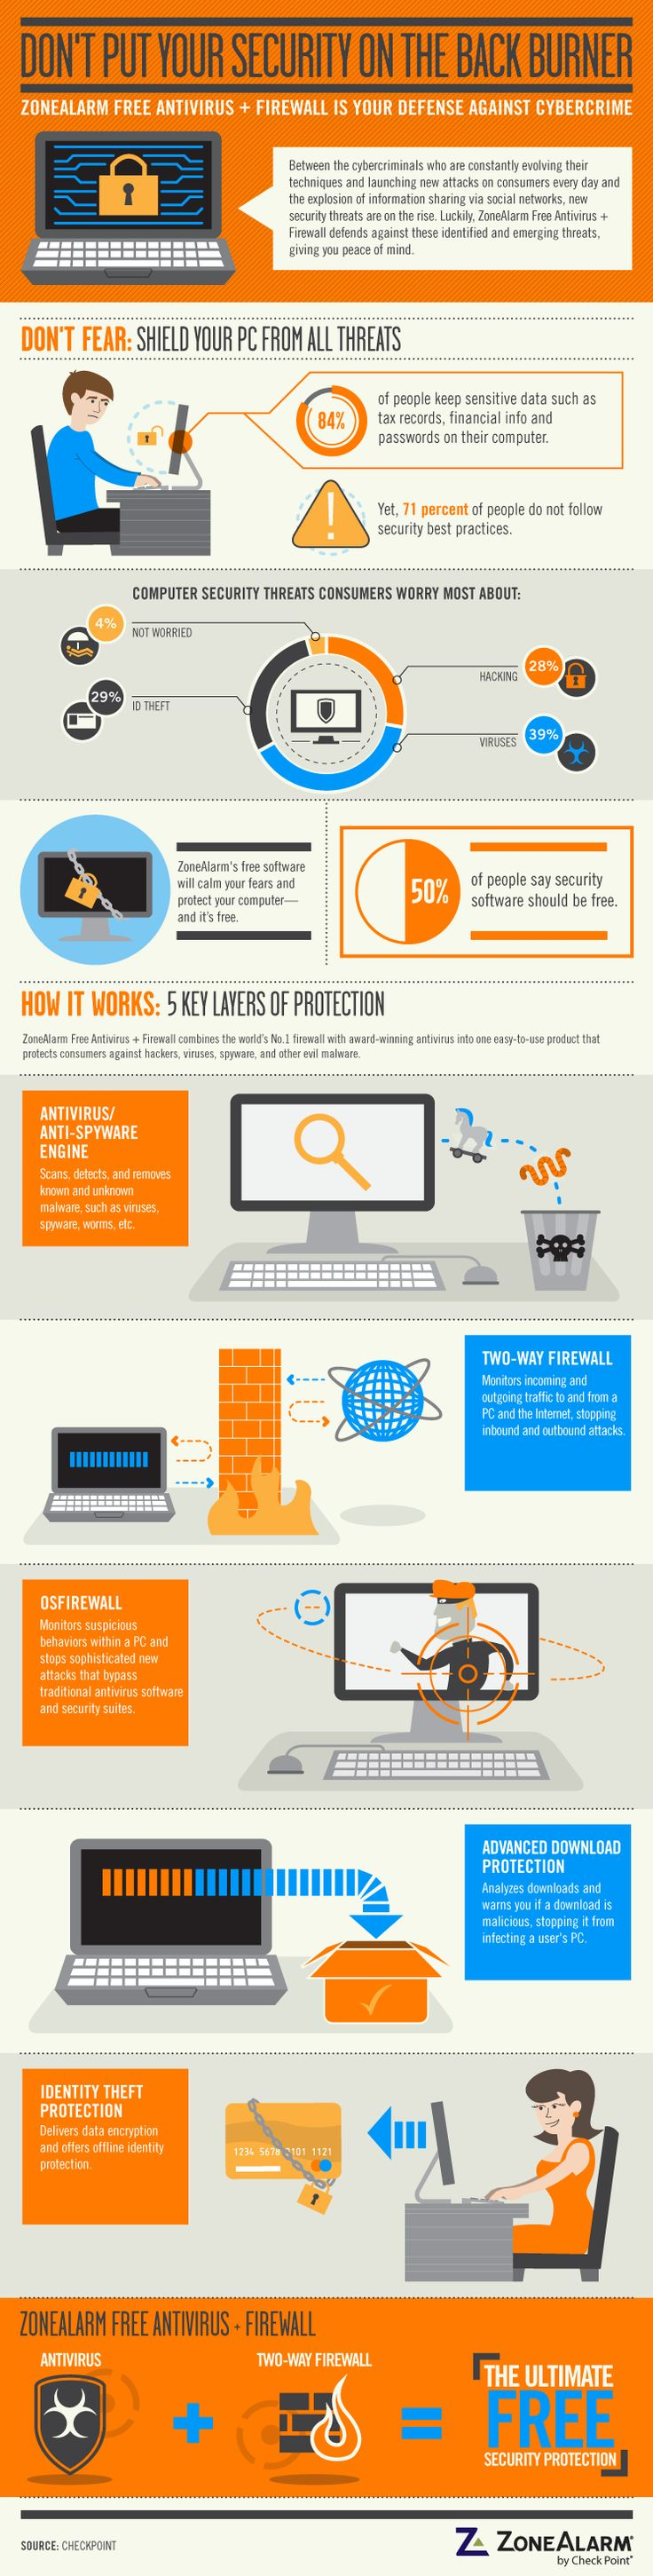 How are you securing your online presence? [infographic]                                                  Posted May 3rd, 2012